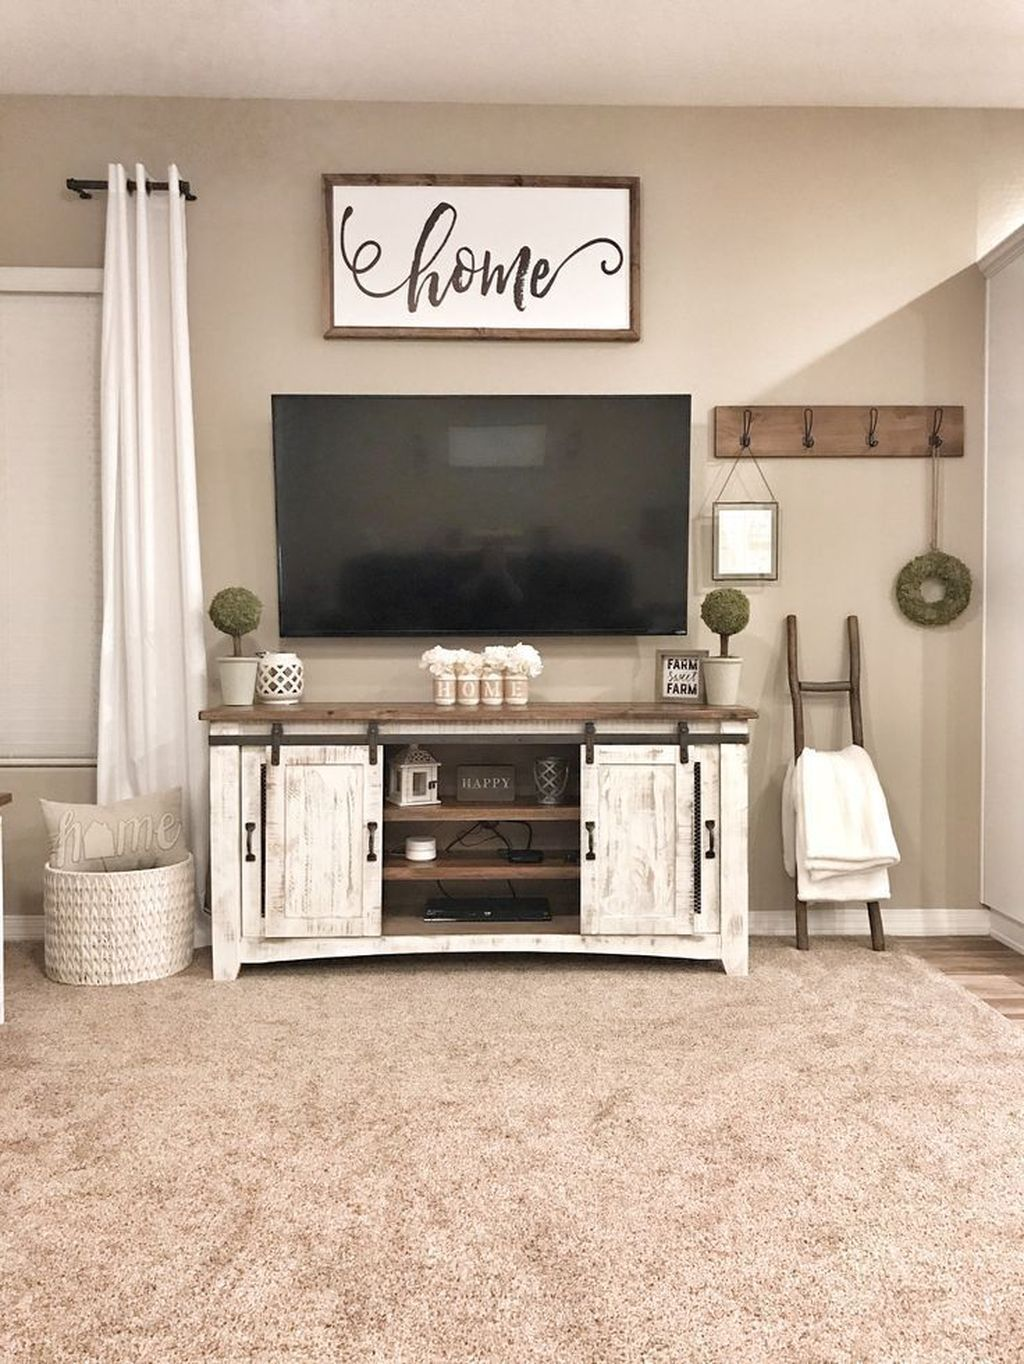 Design For Living Room Tv Cabinet: 35 Best Minimalist Farmhouse TV Stand Ideas For Your